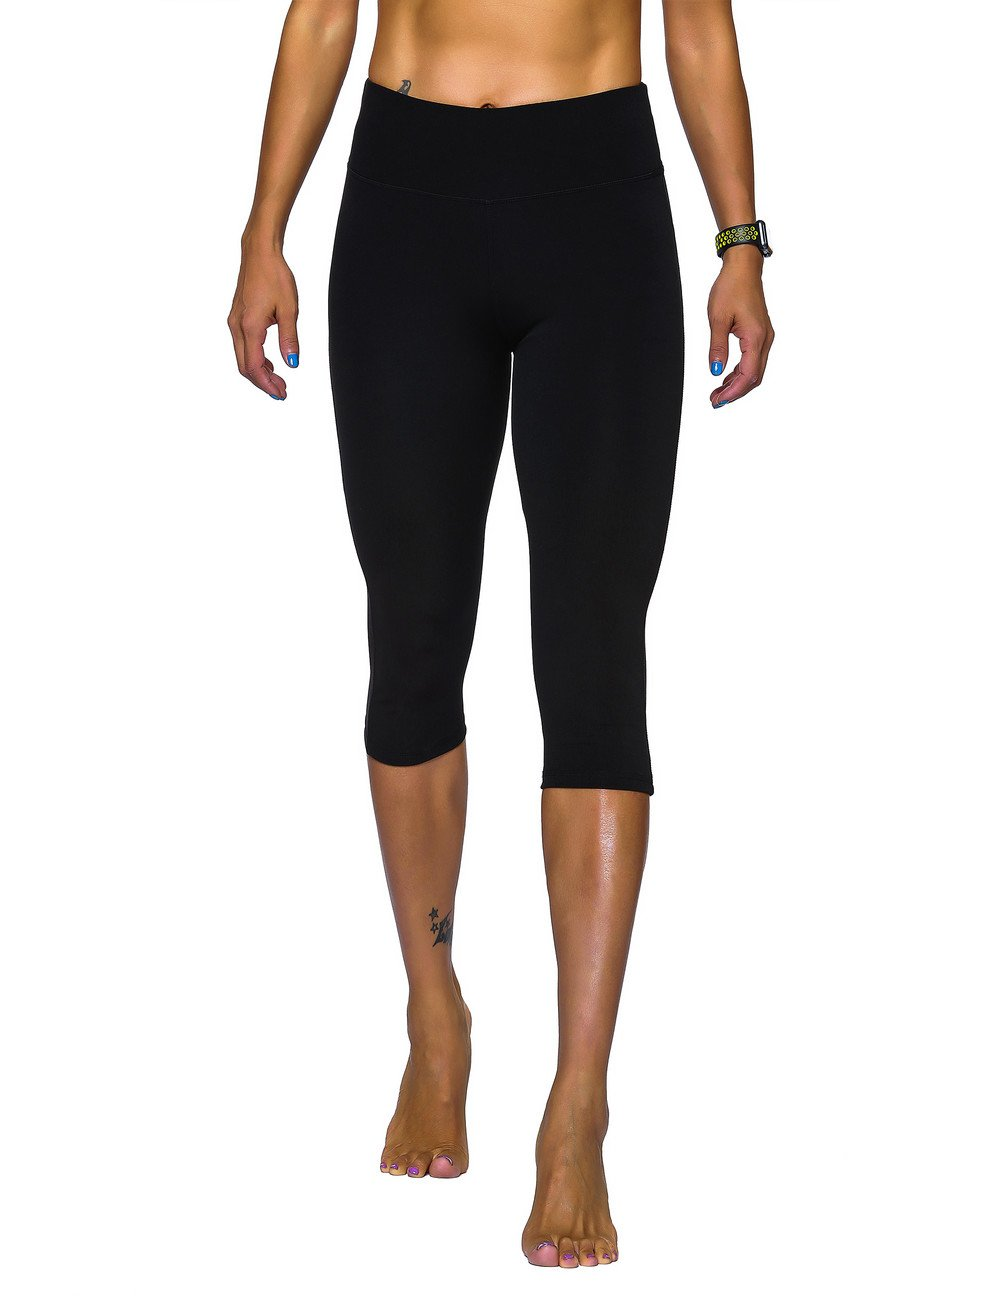 Unitop Women's Leggings Stretchy High-Waist Legging Black L